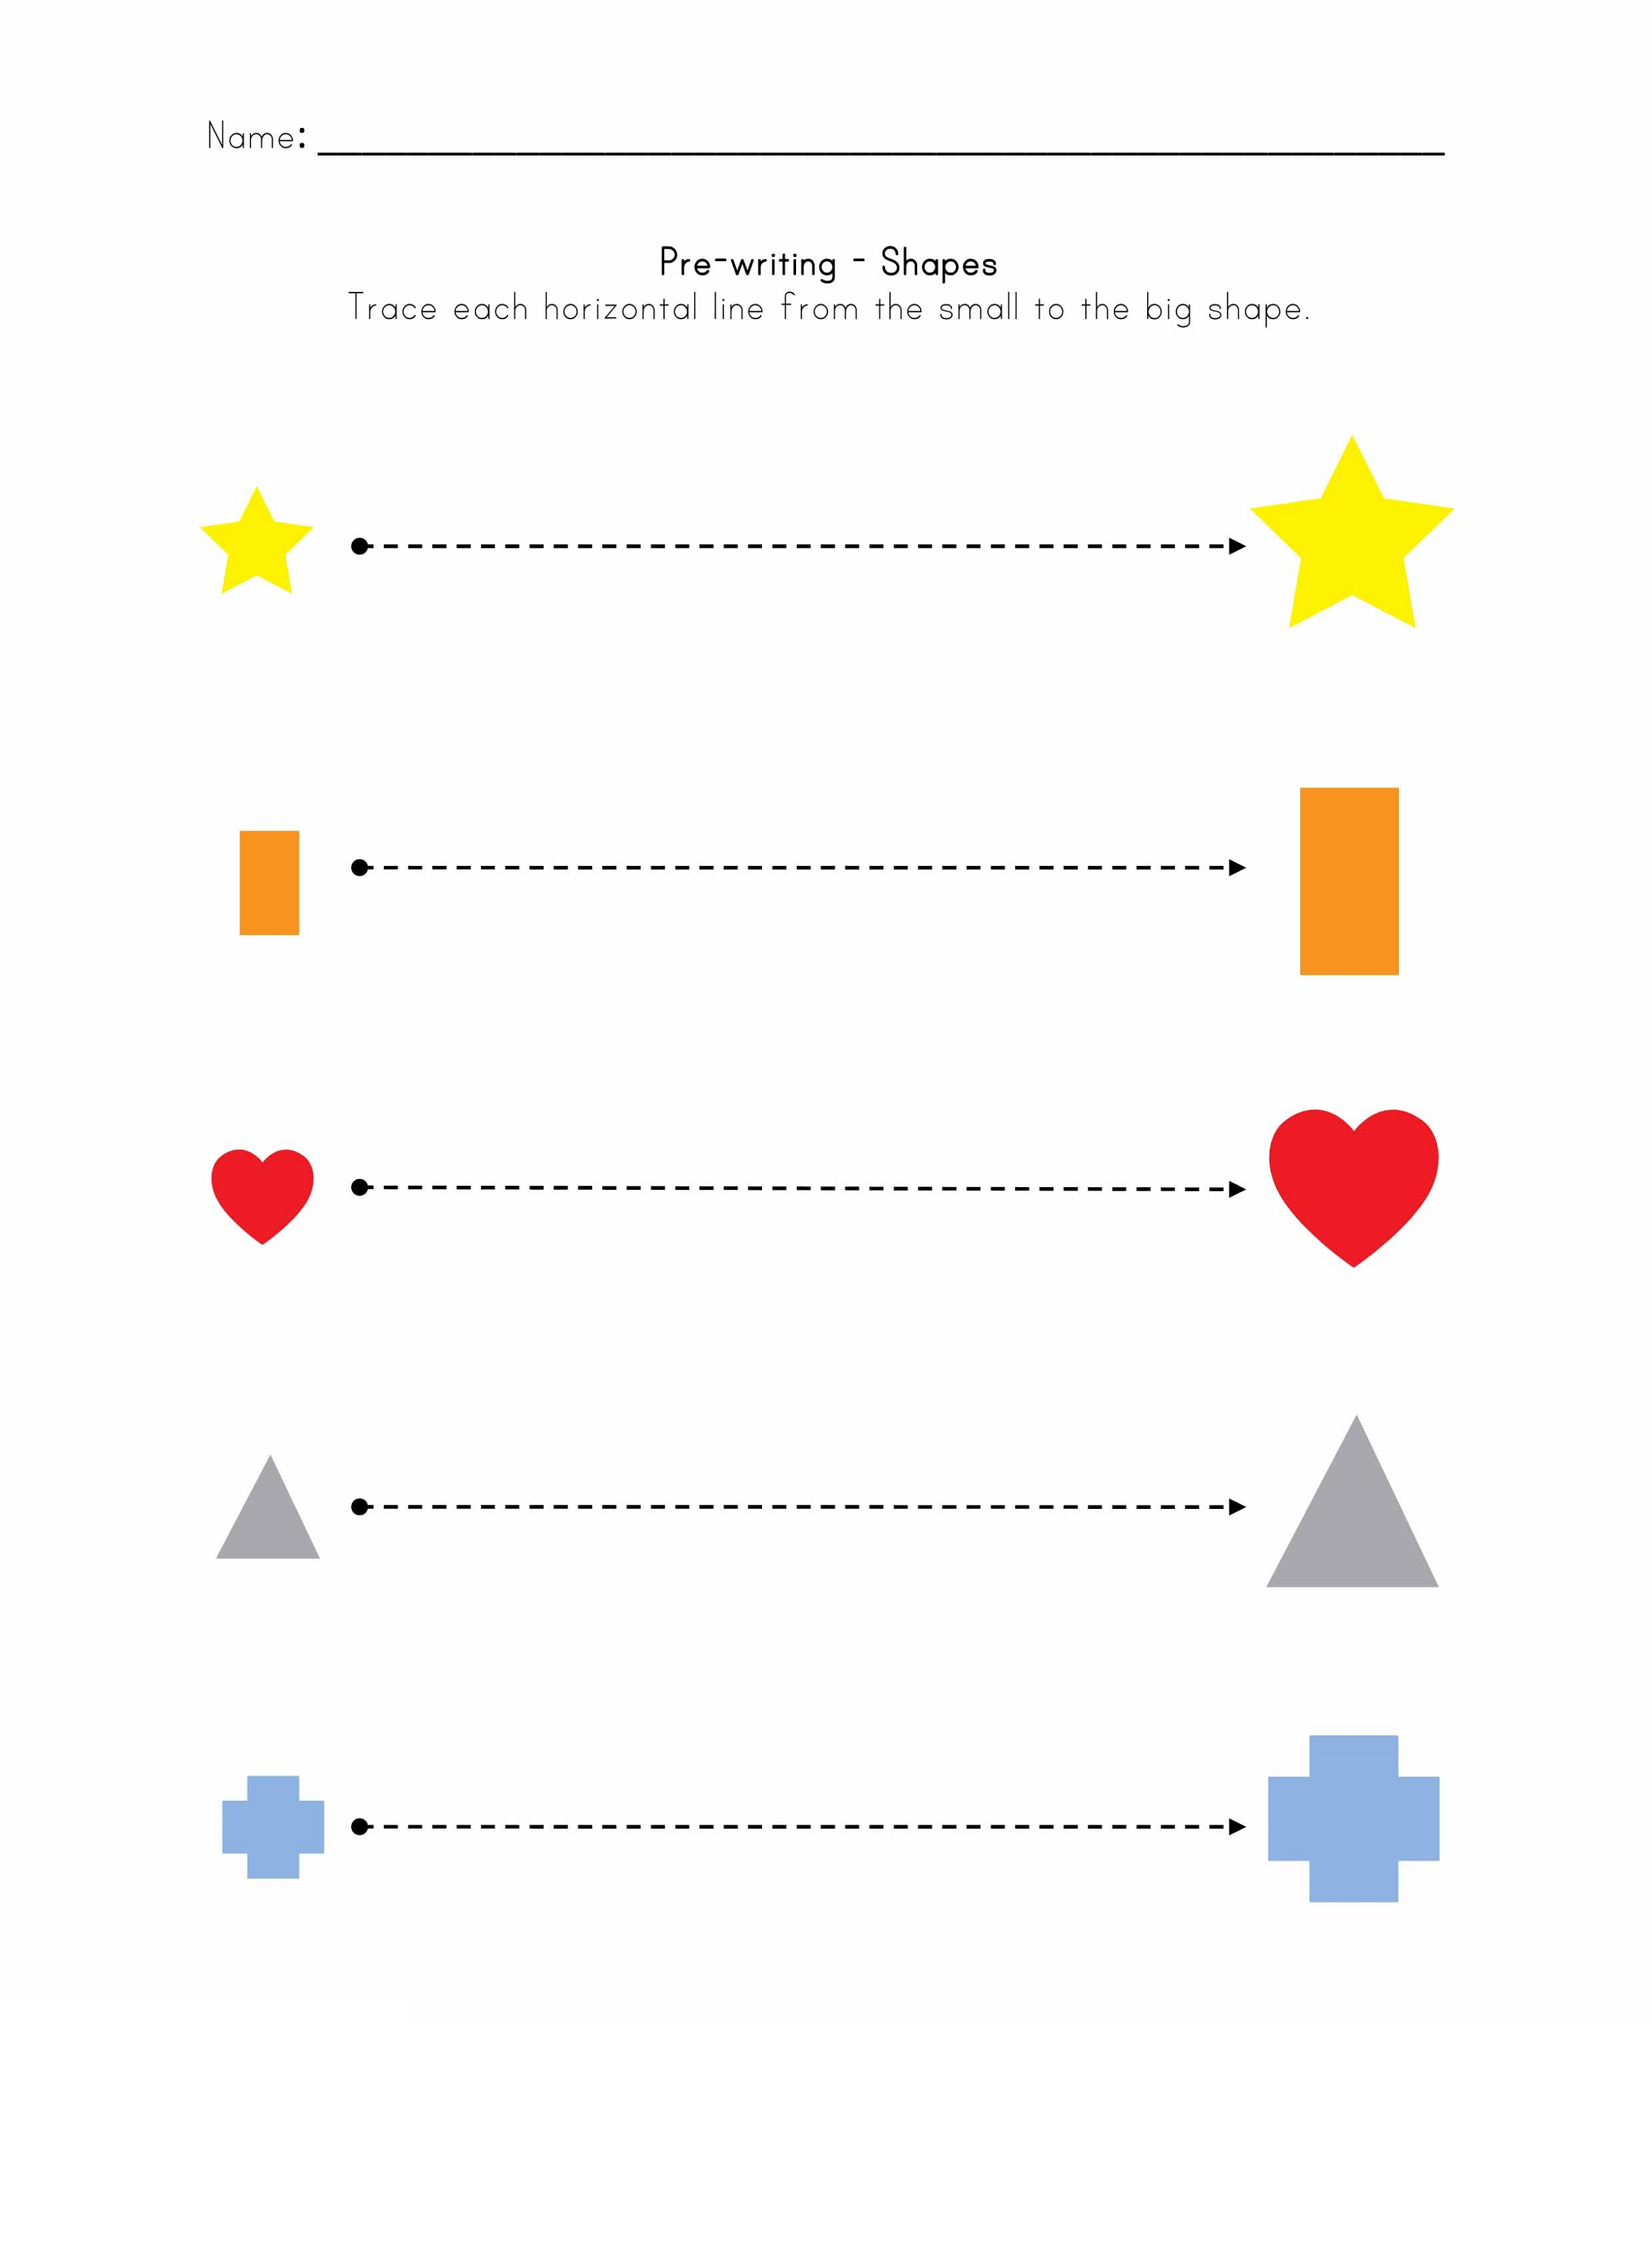 Printables For 3 Year Olds Printables For 3 Year Olds Pre-writing